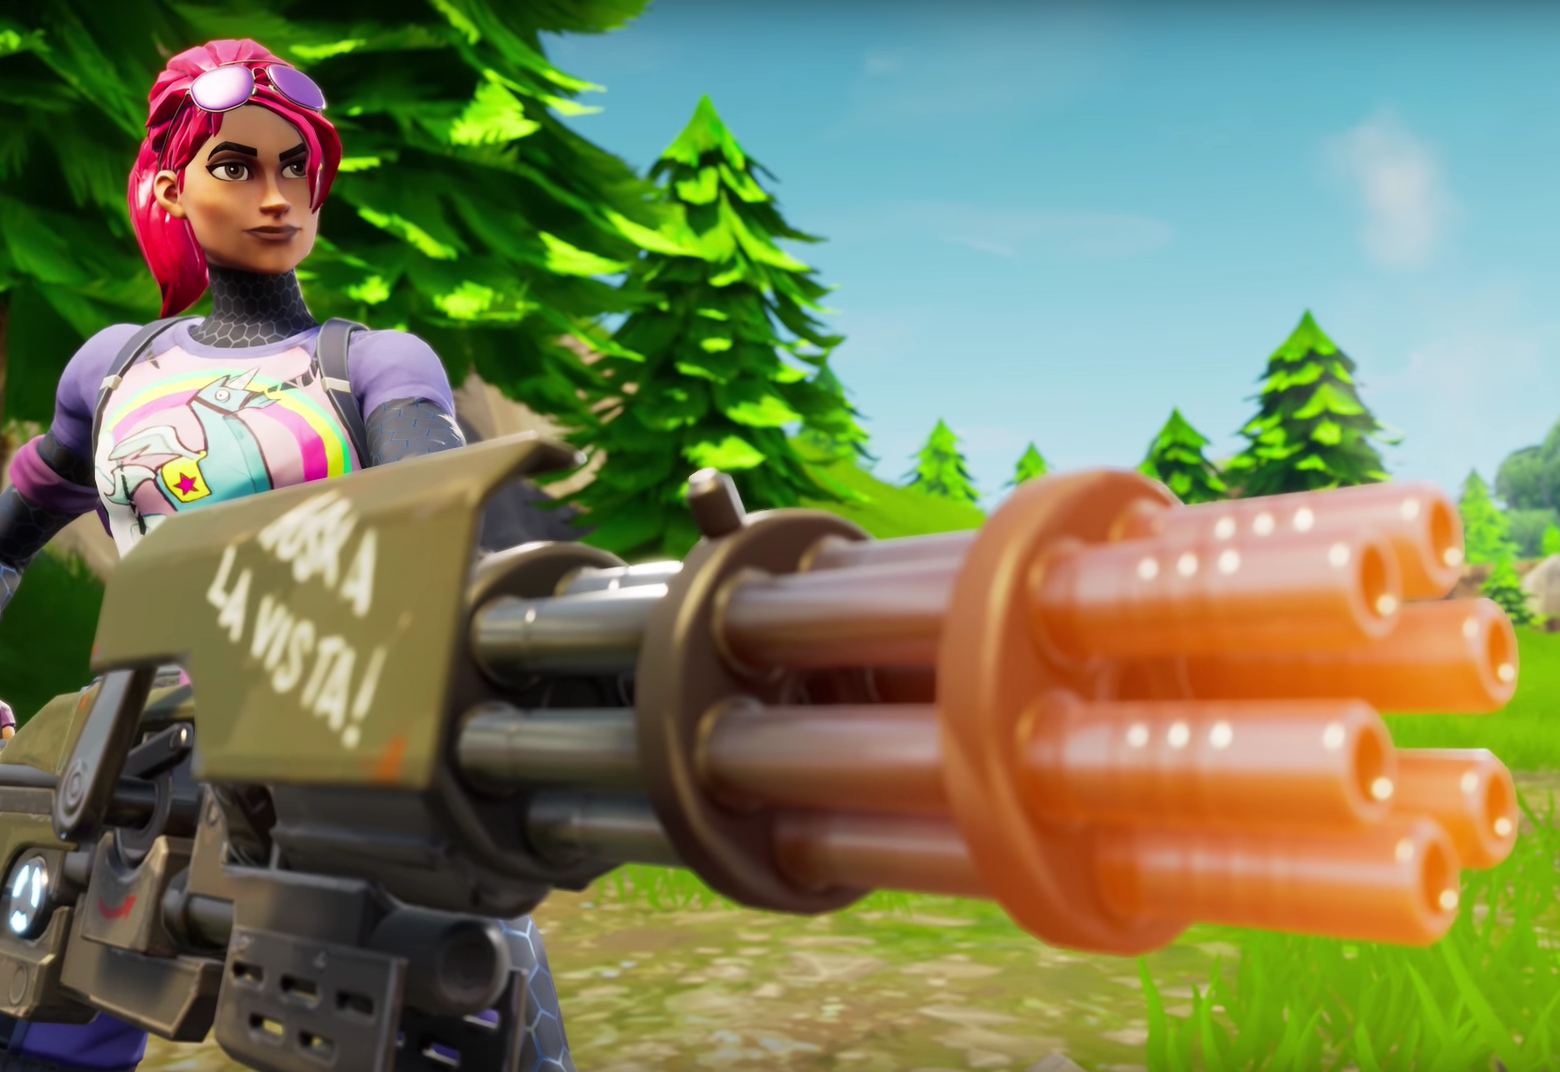 Some Fortnite Players Worry The Game Is Becoming Overstuffed